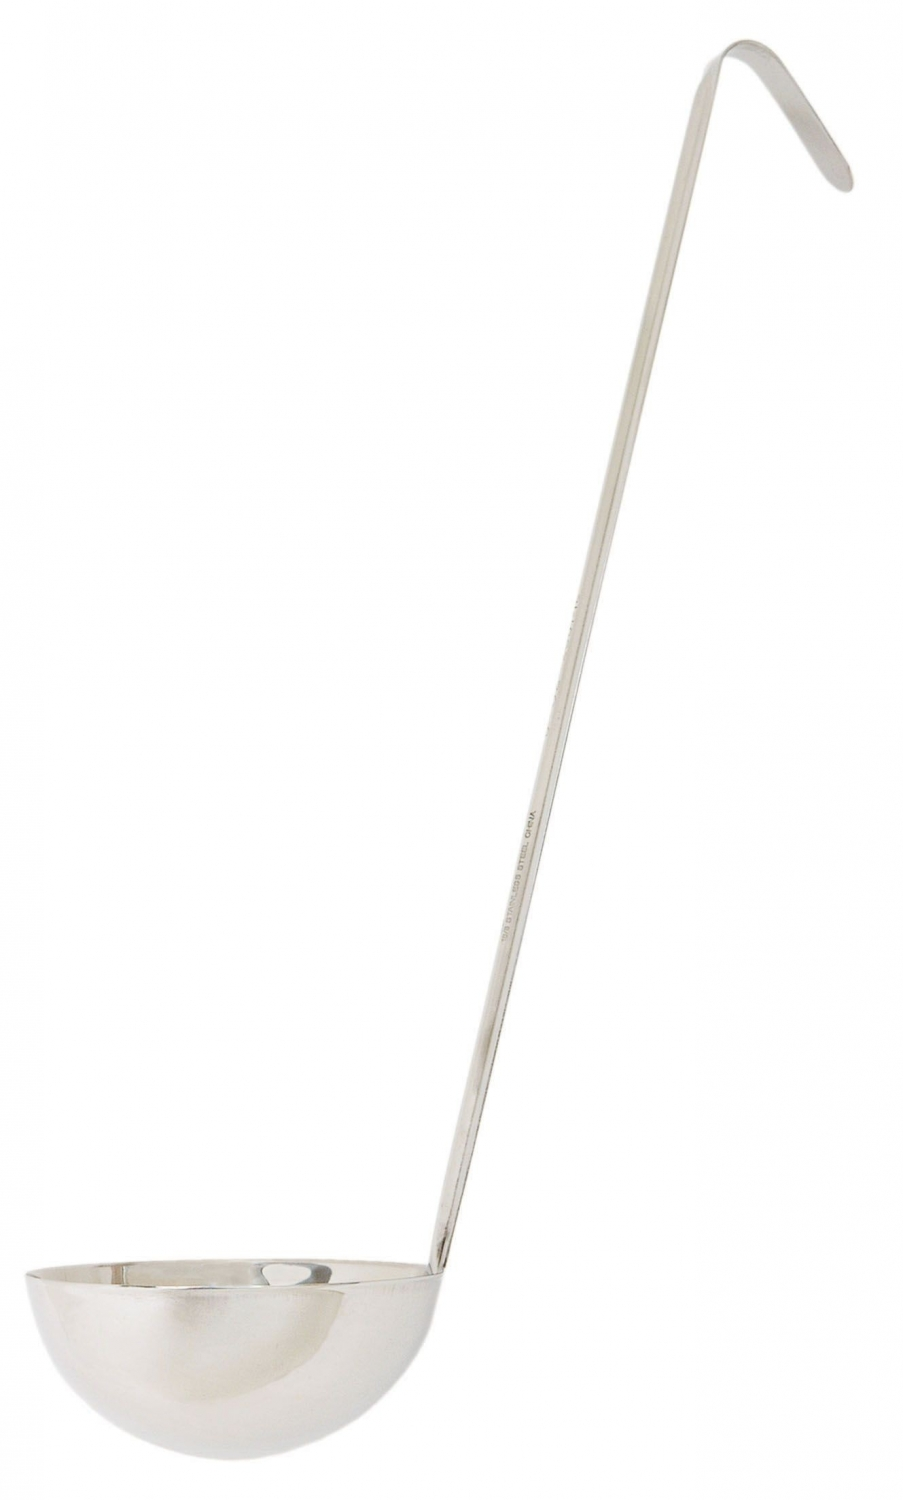 Johnson Rose 73101 One-Piece Economy Ladle 1 oz.